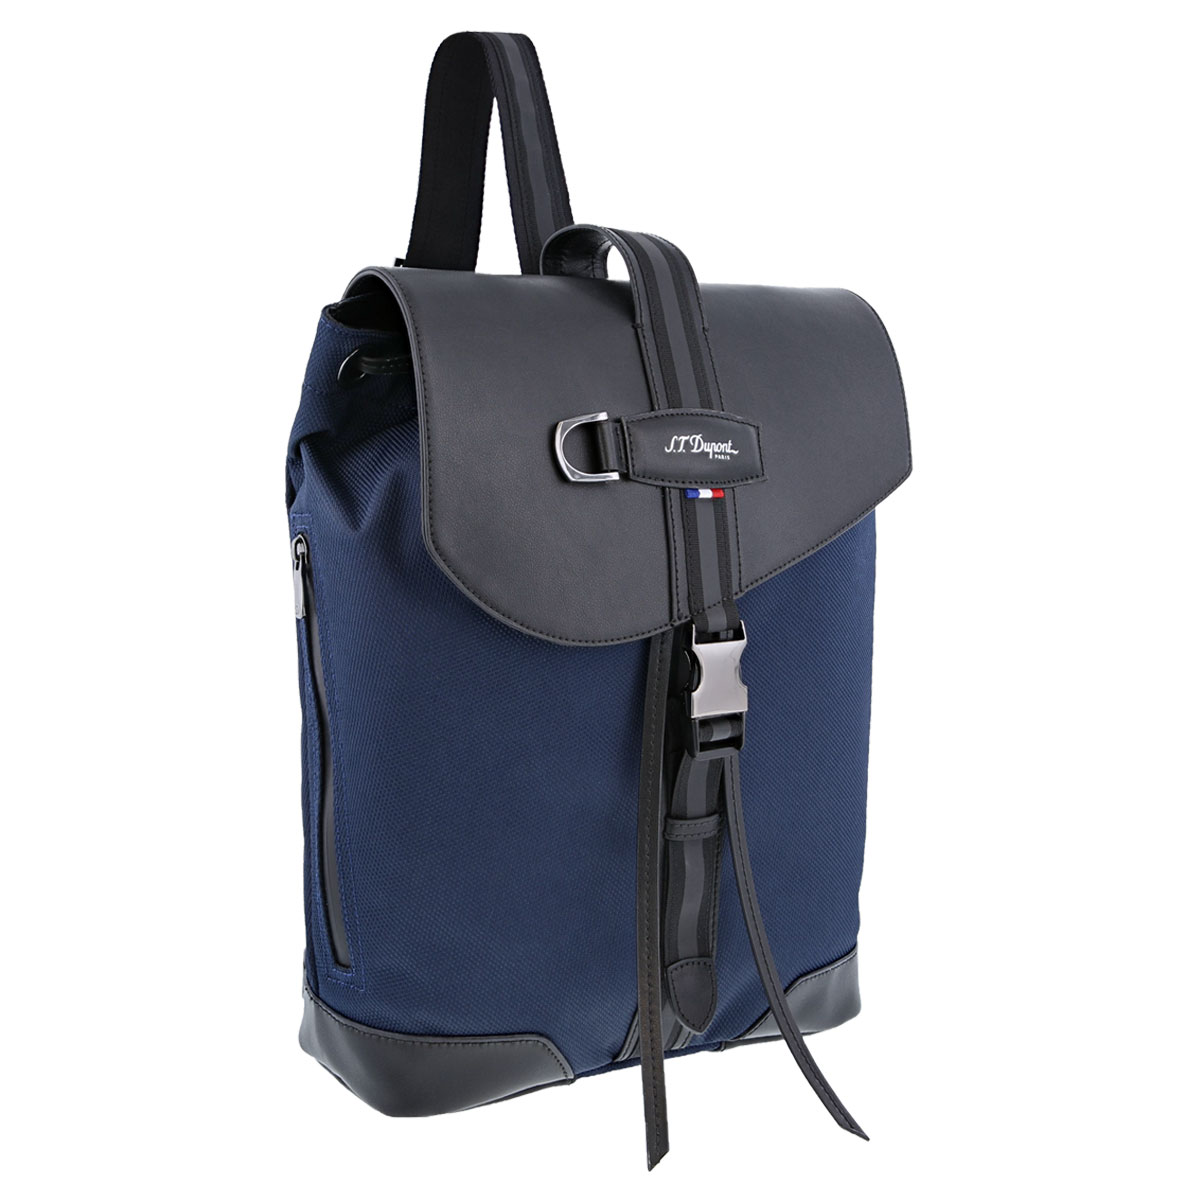 Millenium Small Backpack Laptop Bag